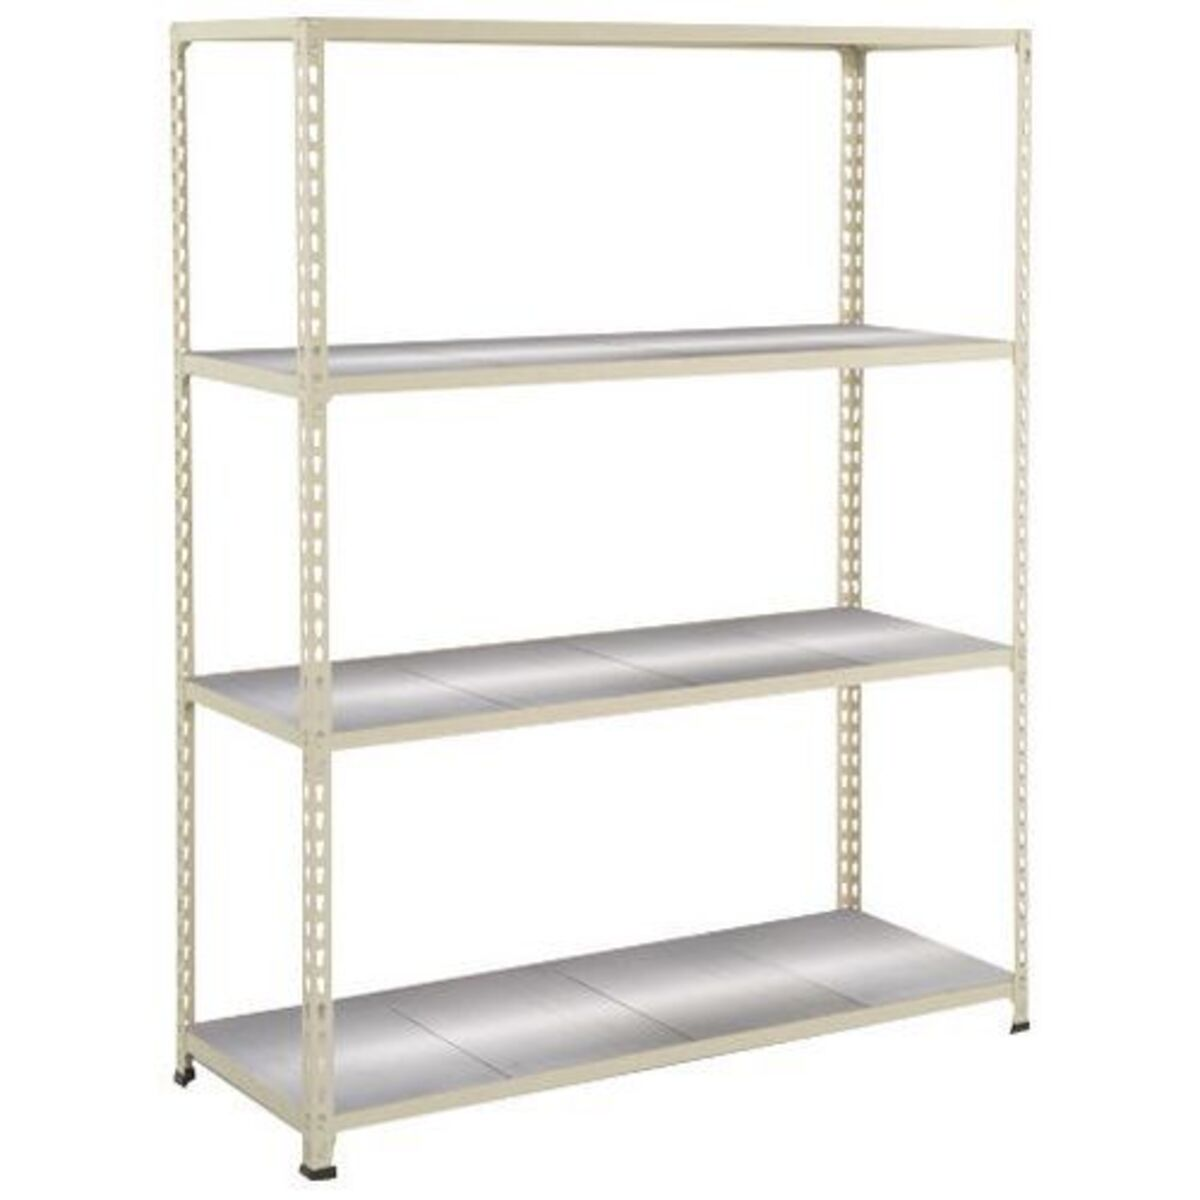 Rayonnage Rapid 2 4 tablettes metal 1830x1220x610 gris clair